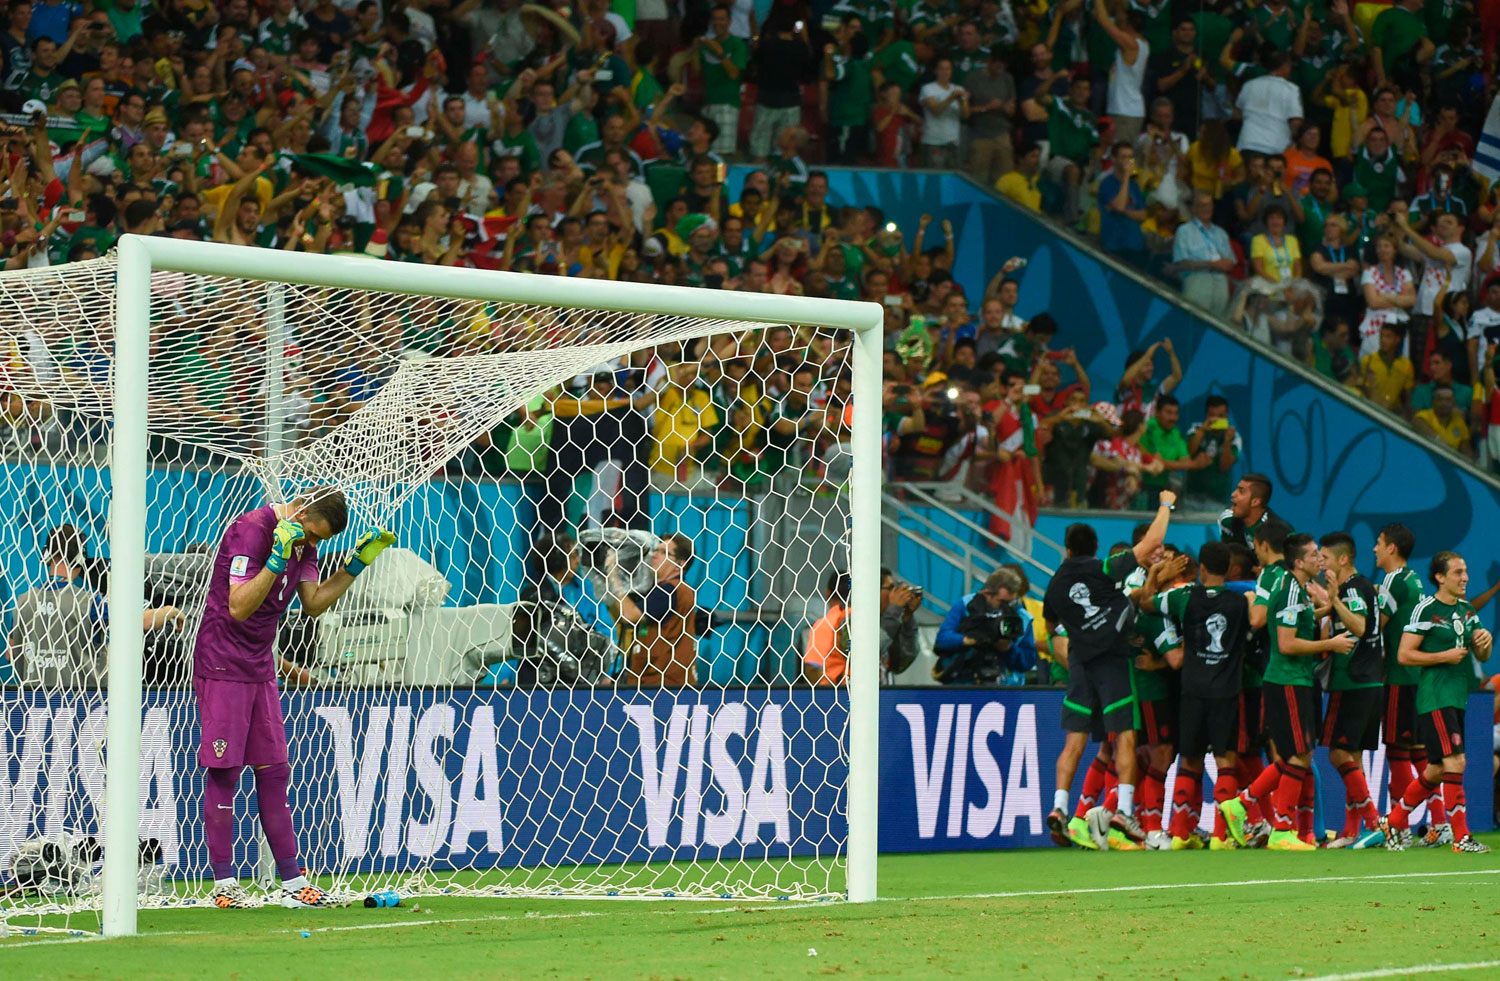 Croatia's goalkeeper Stipe Pletikosa reacts after Mexico scored in a match between Croatia and Mexico at the Pernambuco Arena in Recife, Brazil on June 23, 2014.